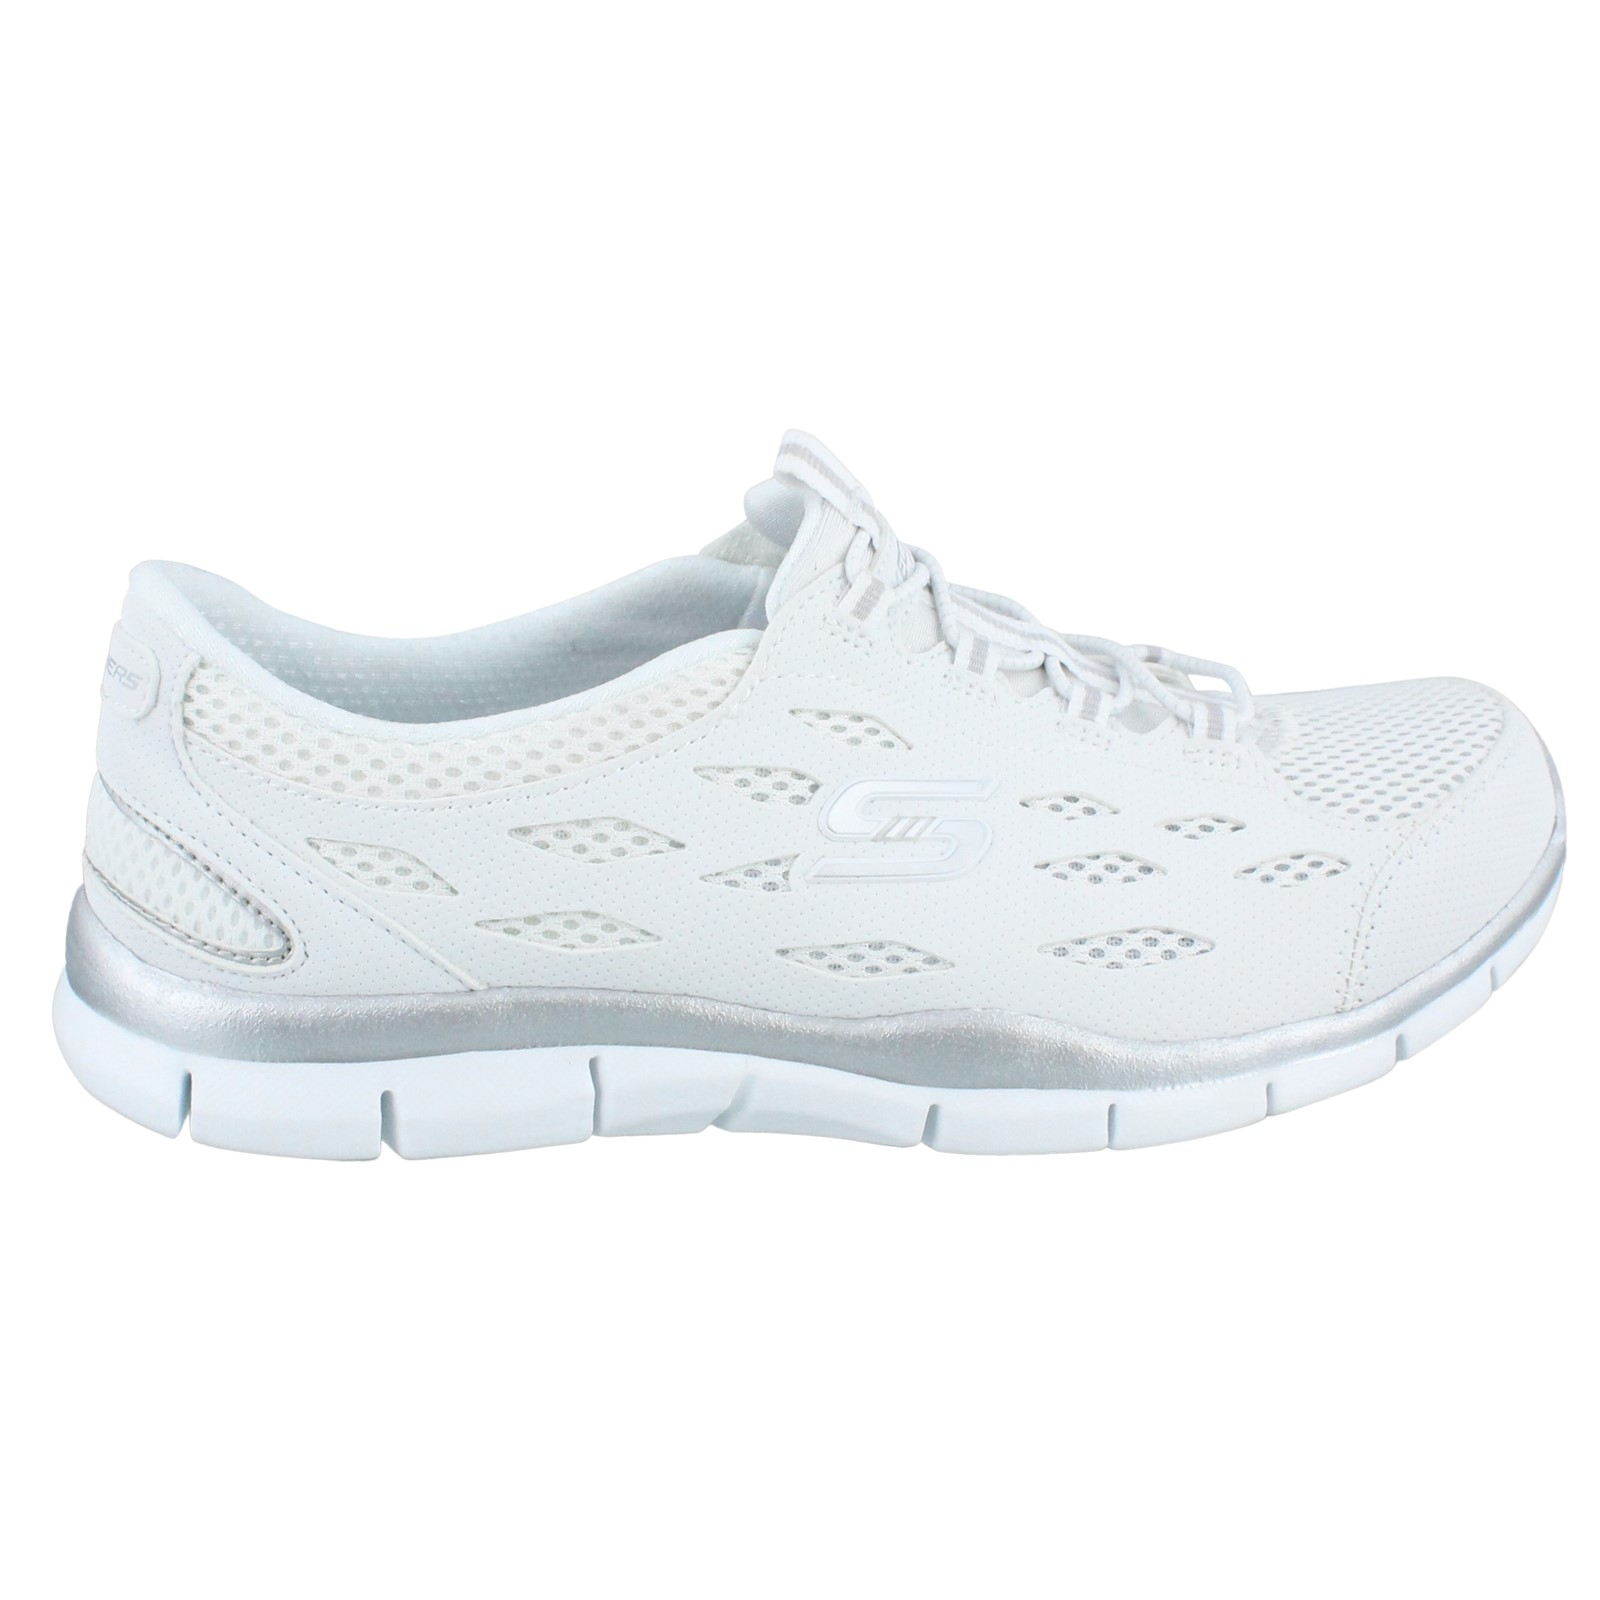 Women's Skechers, Gratis Going Places Slip on Sneaker